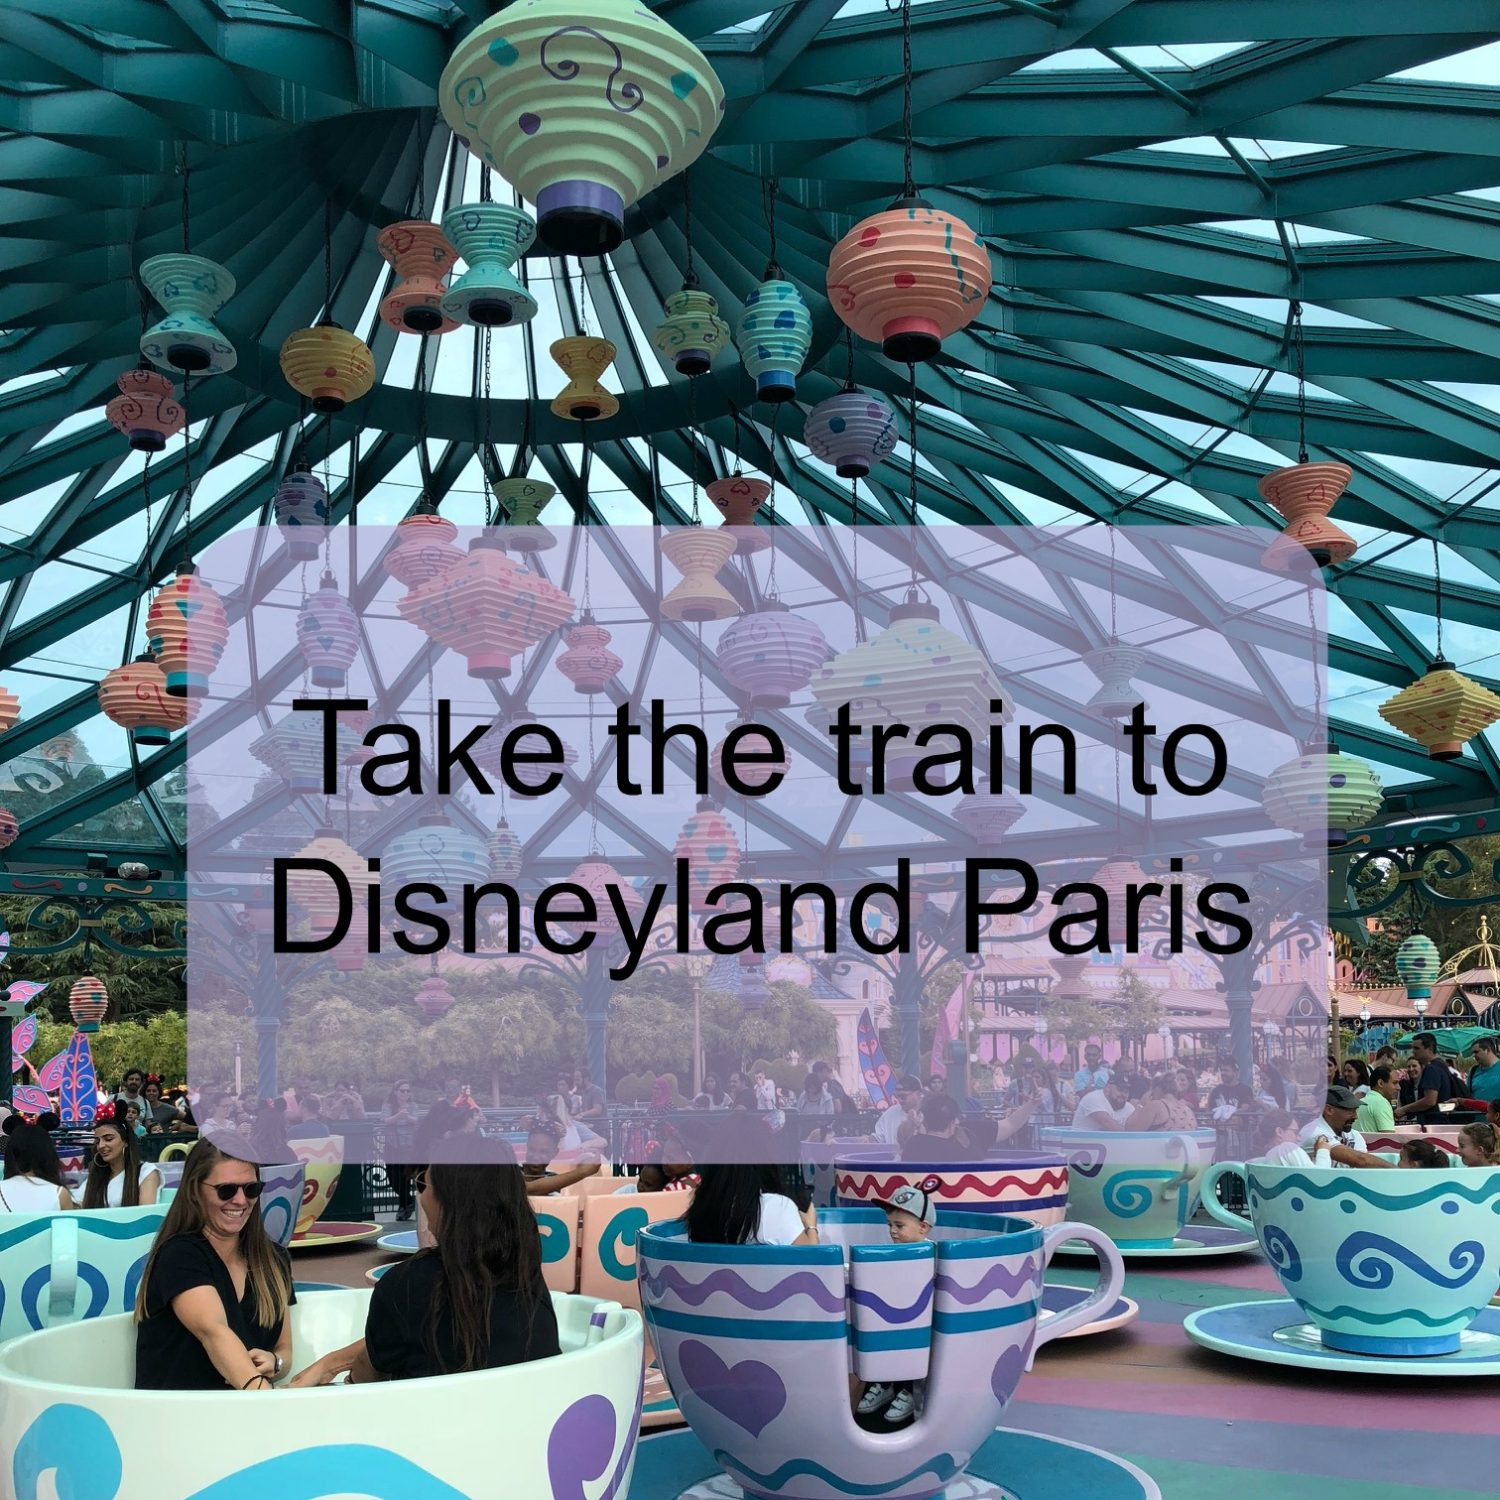 How to take the train to Disneyland Paris